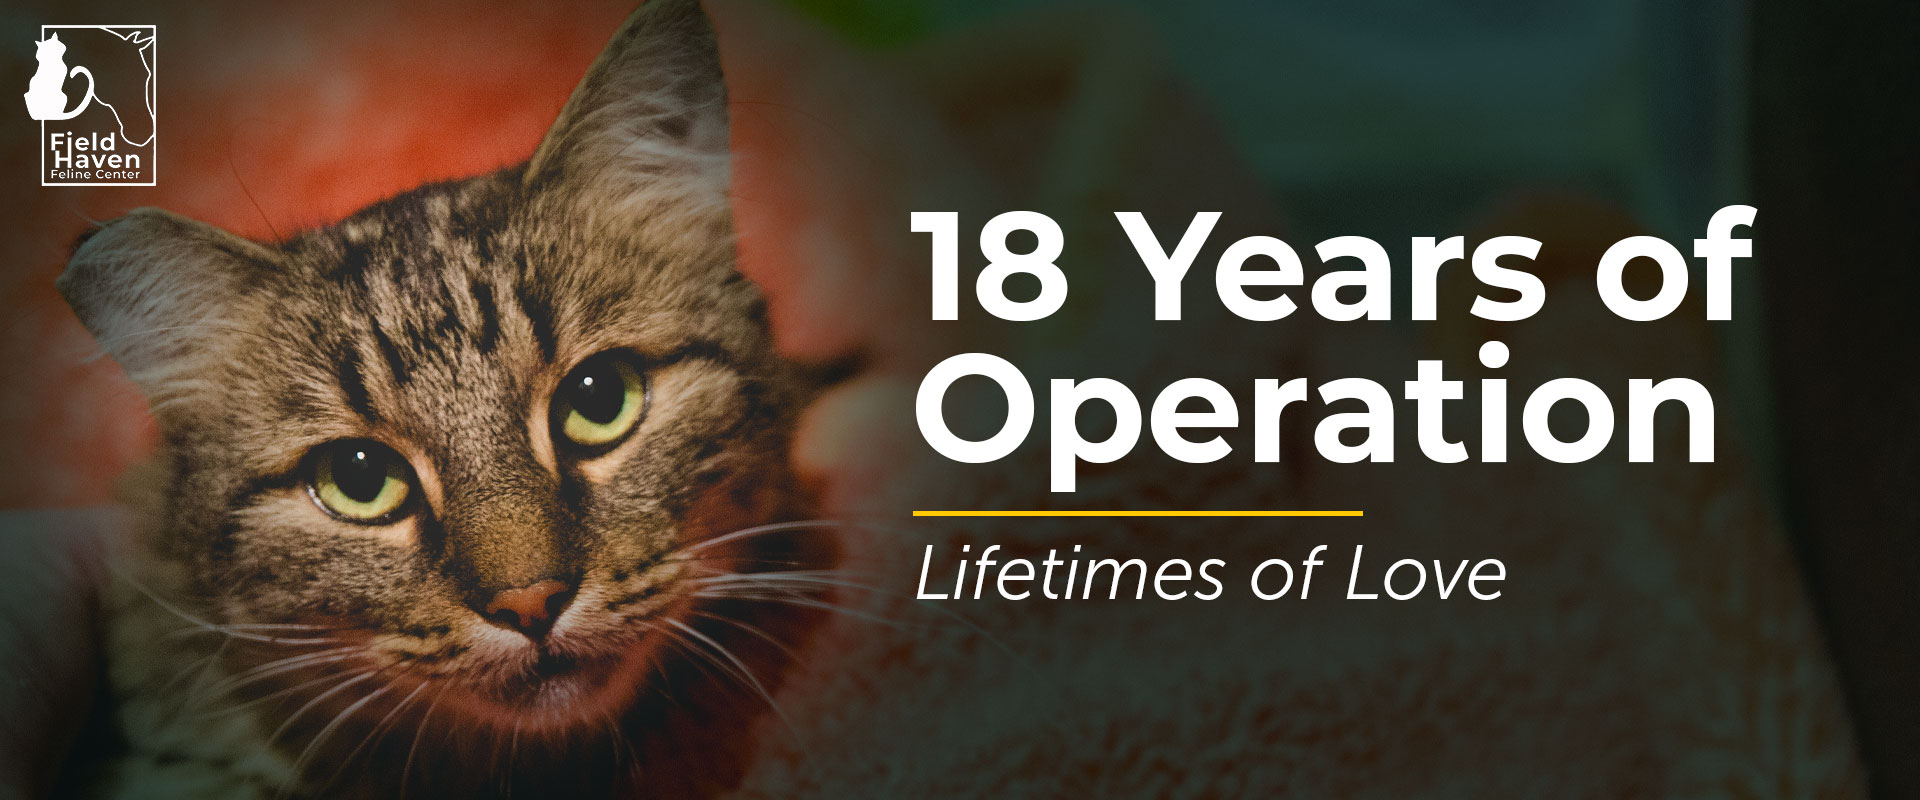 18 Years of Operation, Lifetimes of Love